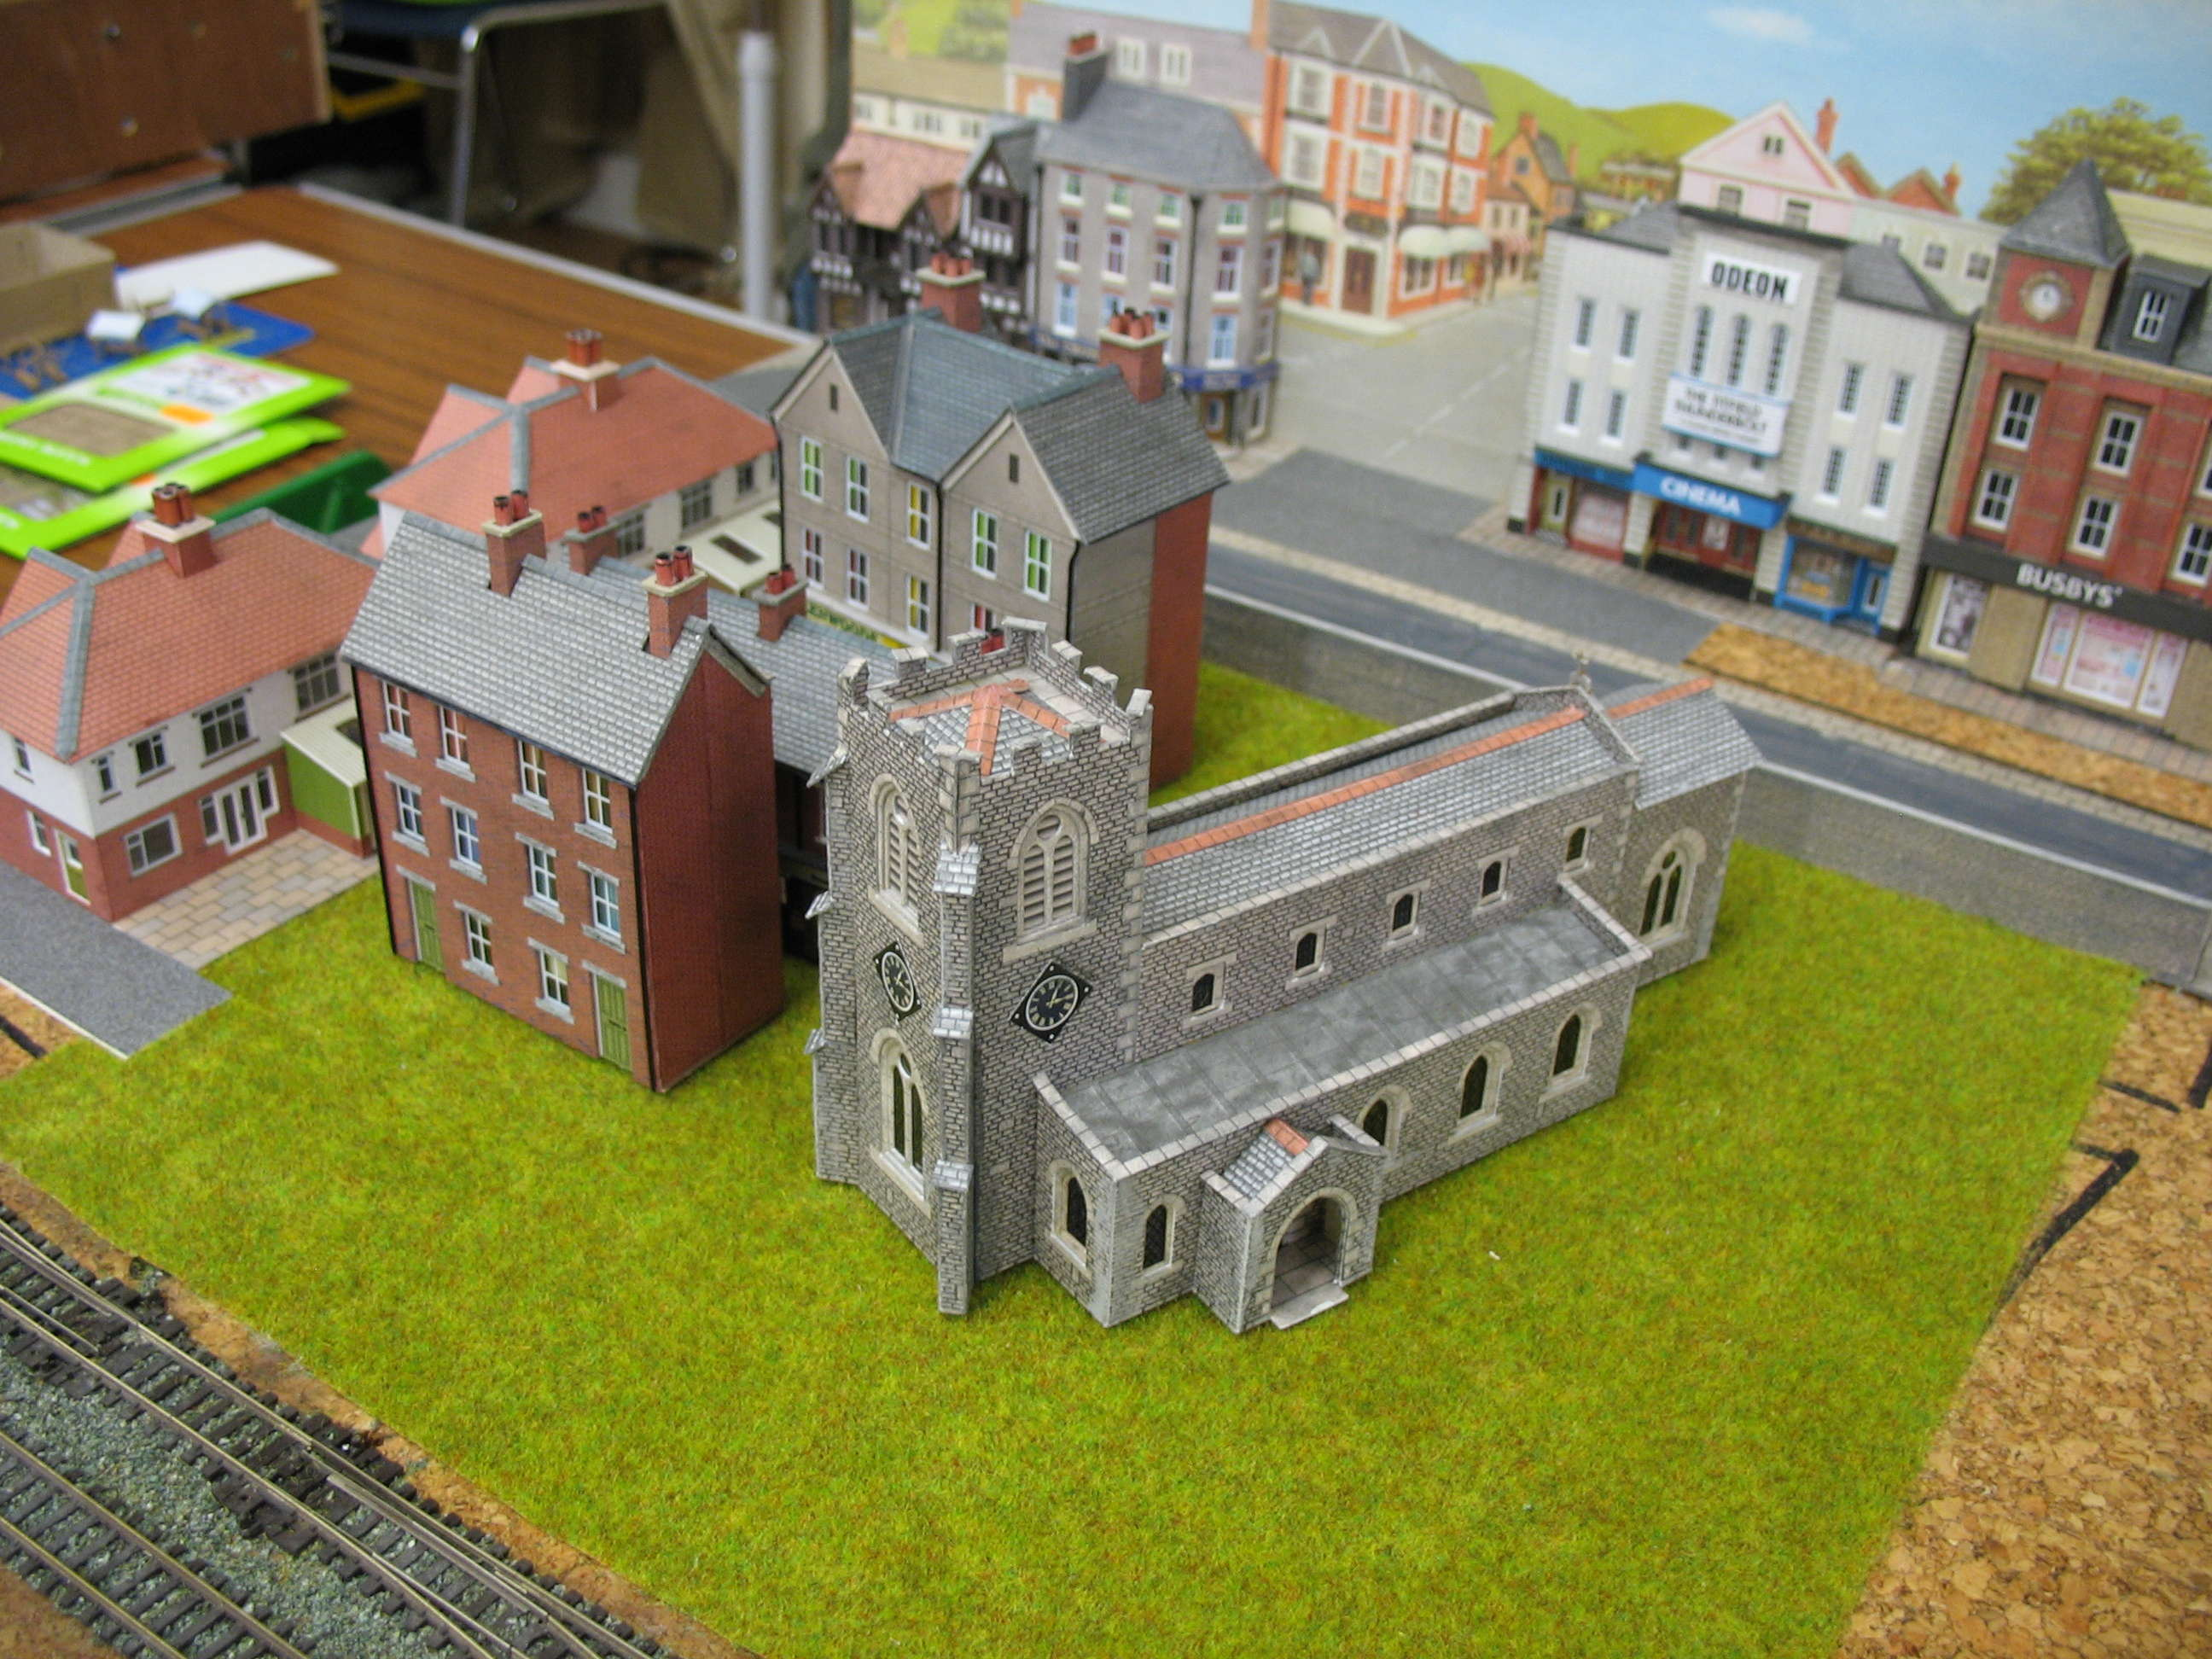 The towns church is trial fitted on OSP & WL 'N' gauge layout